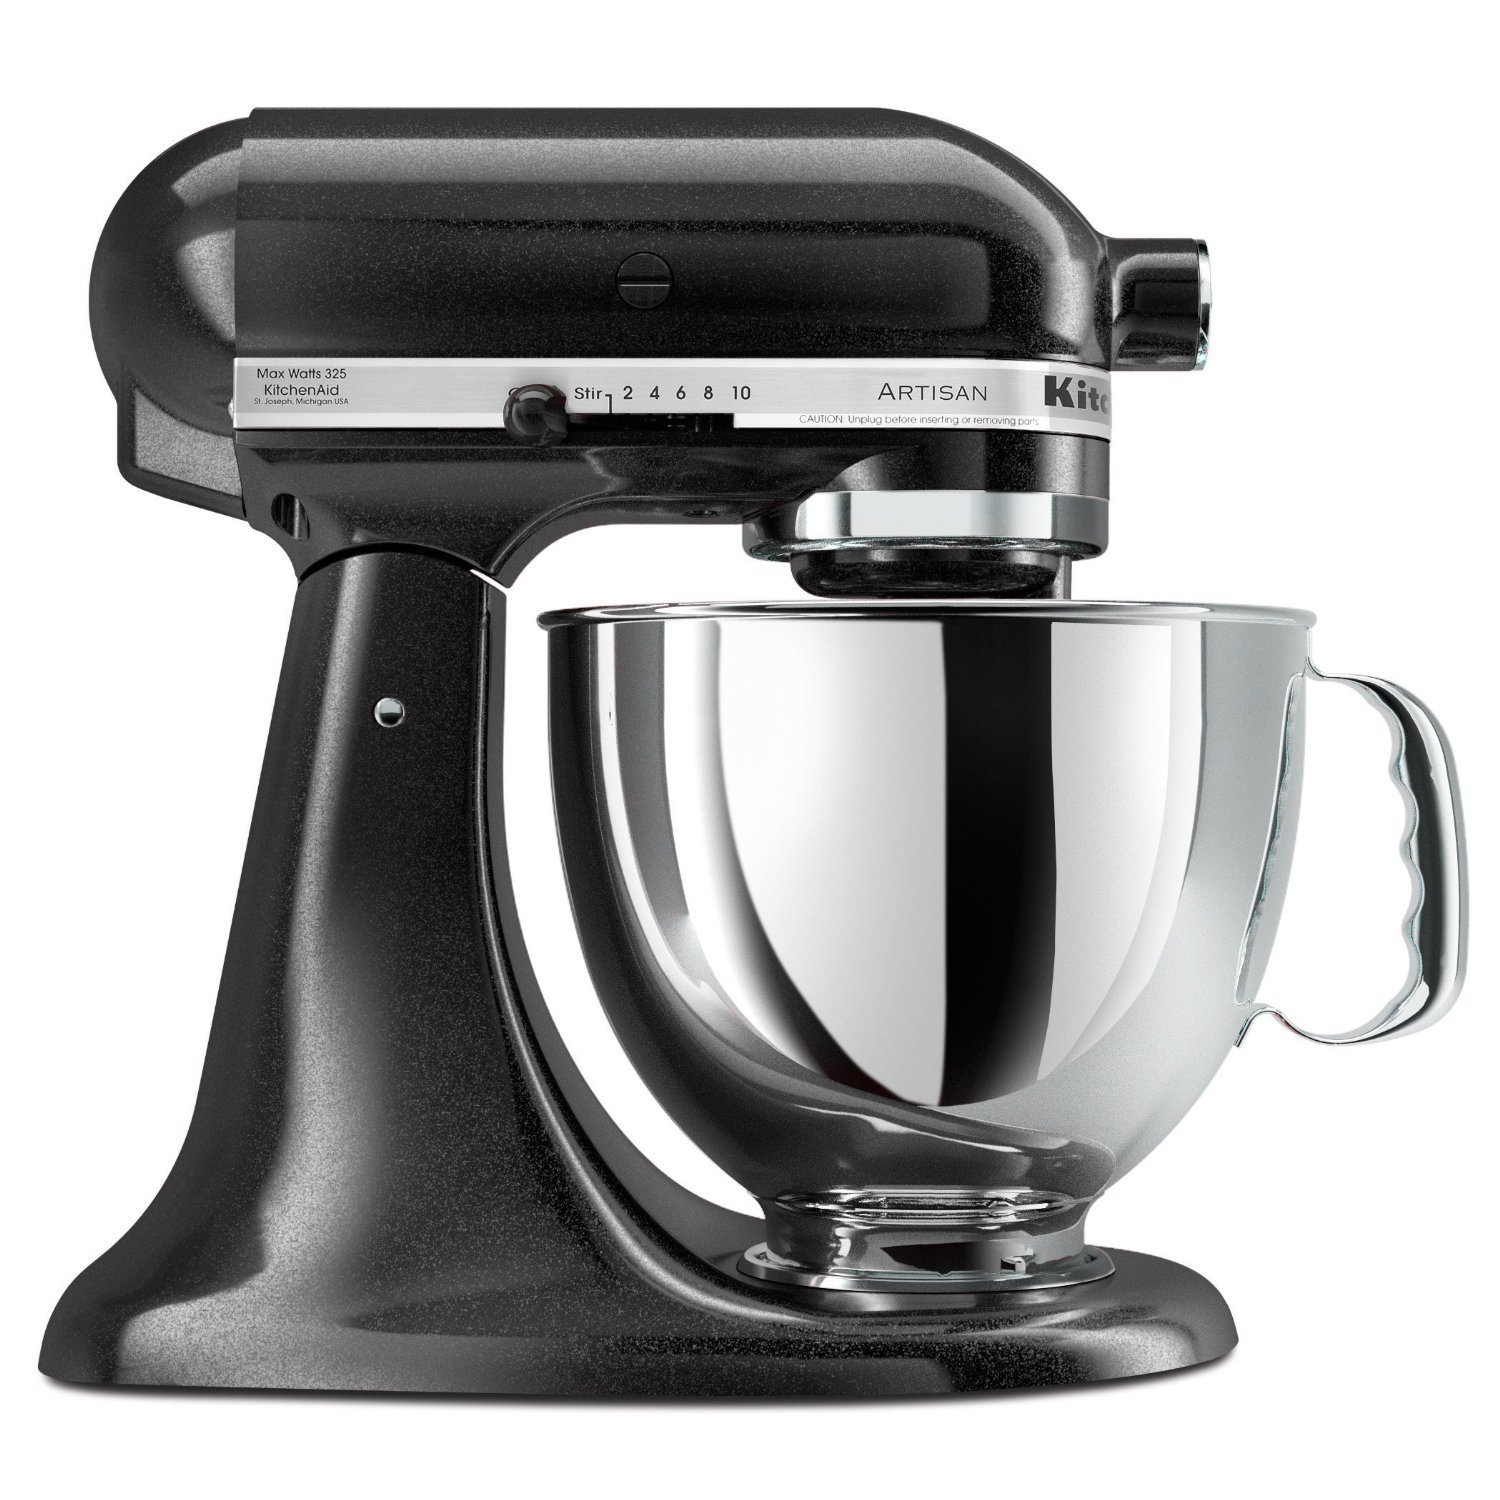 Littlekitchenshop Kitchenaid Stand Mixer Artisan Series 5